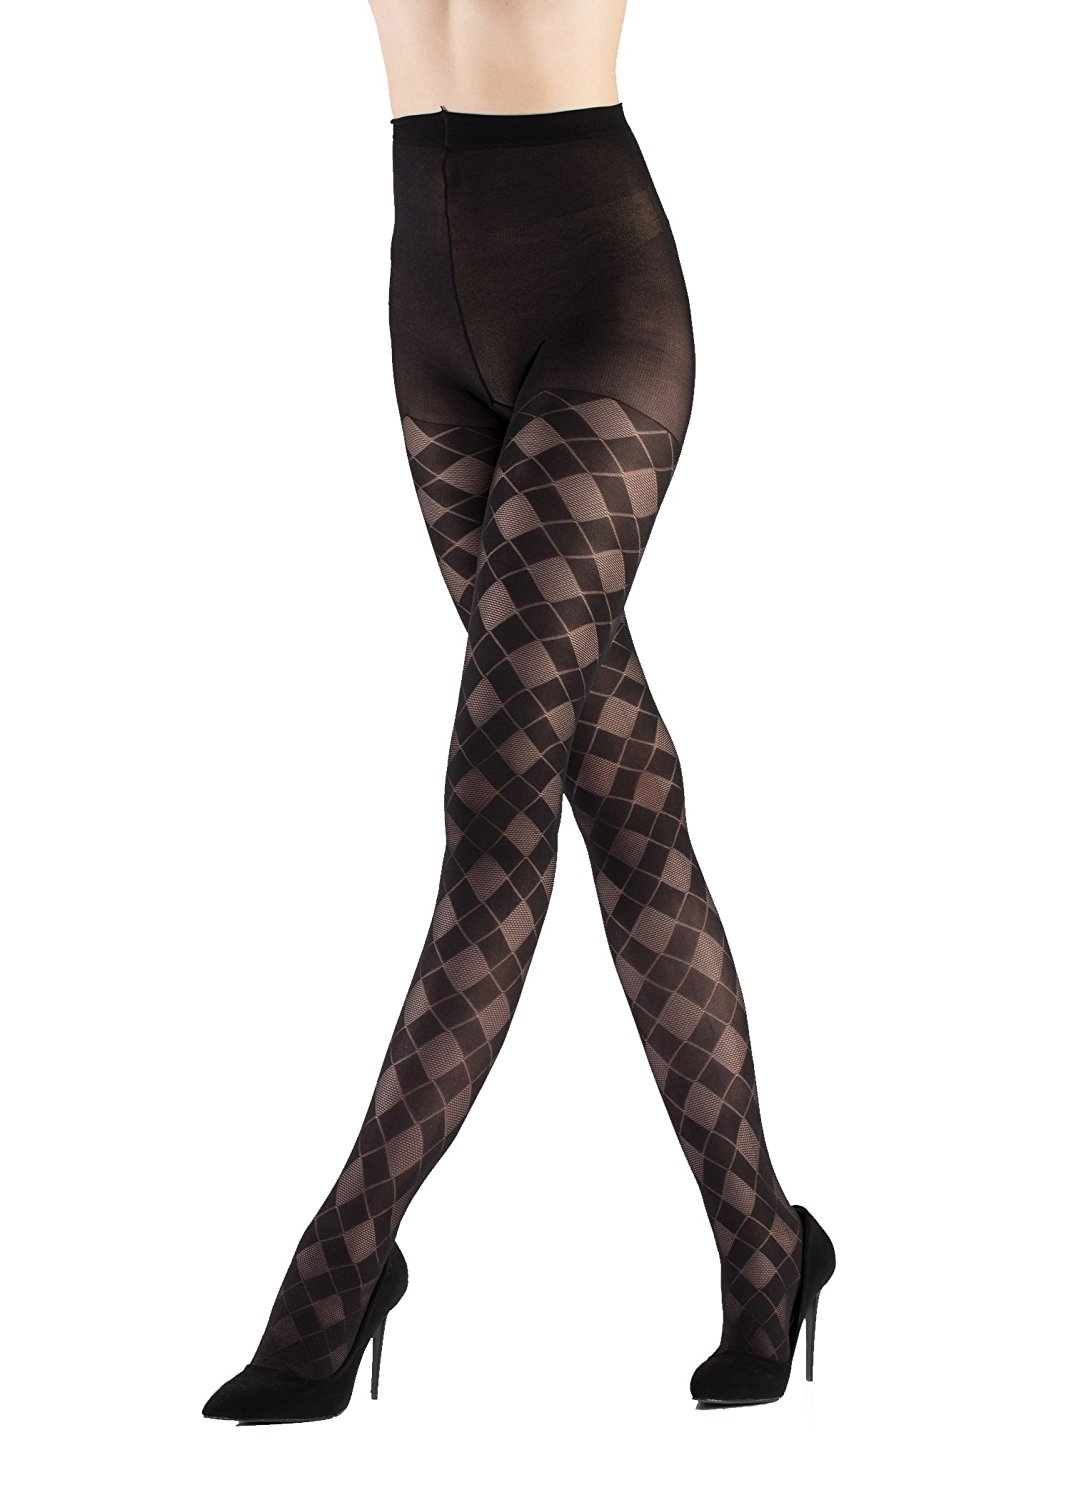 Desire Hosiery Fishnet Pantyhose Small Size Red 100/% Nylon Made In Taiwan